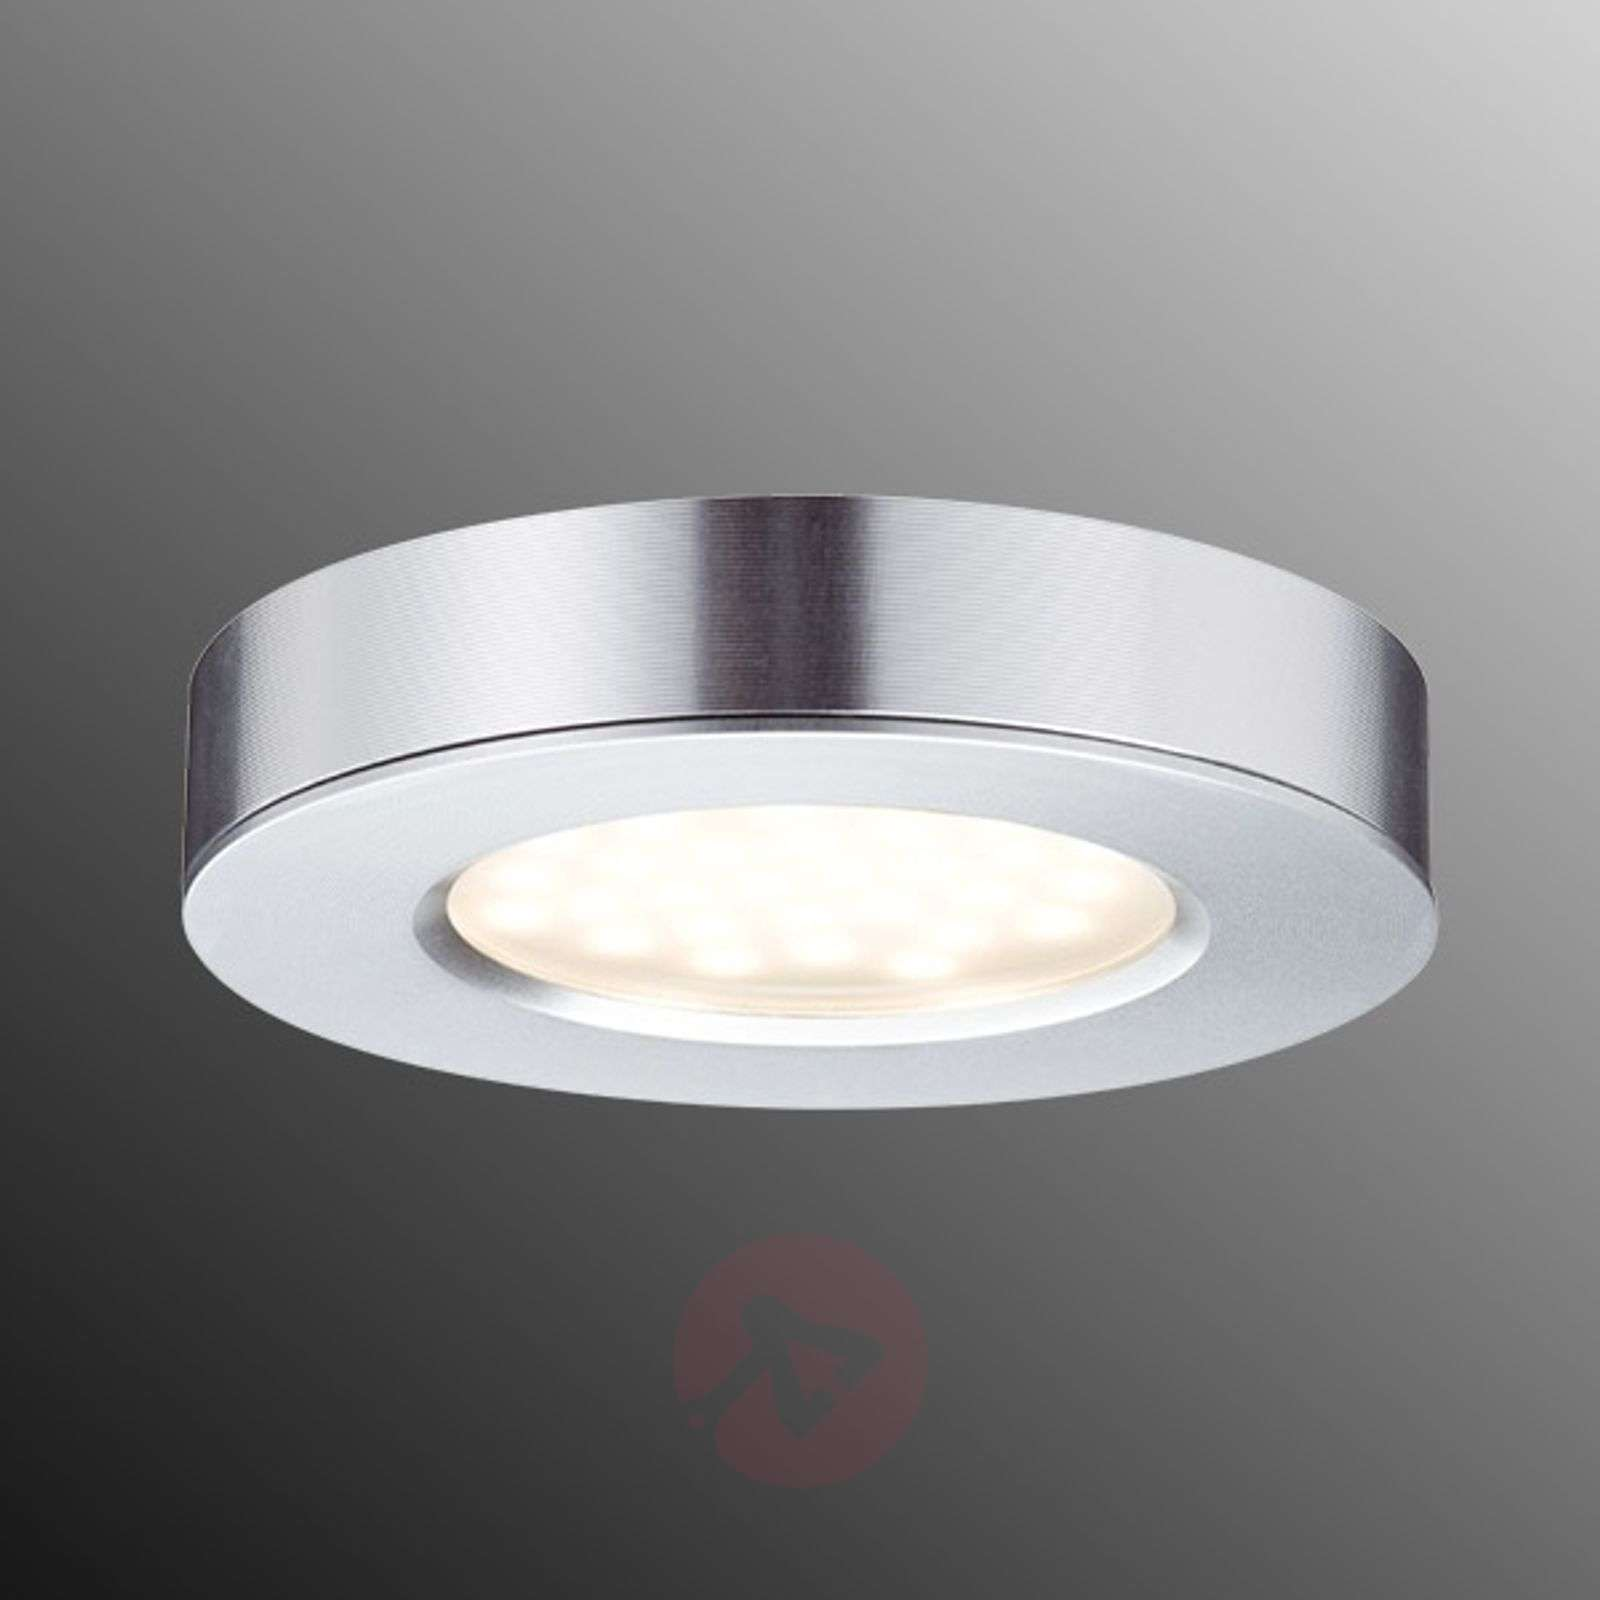 Platy LED meubel in en opbouwlamp set van 3-7600592-02